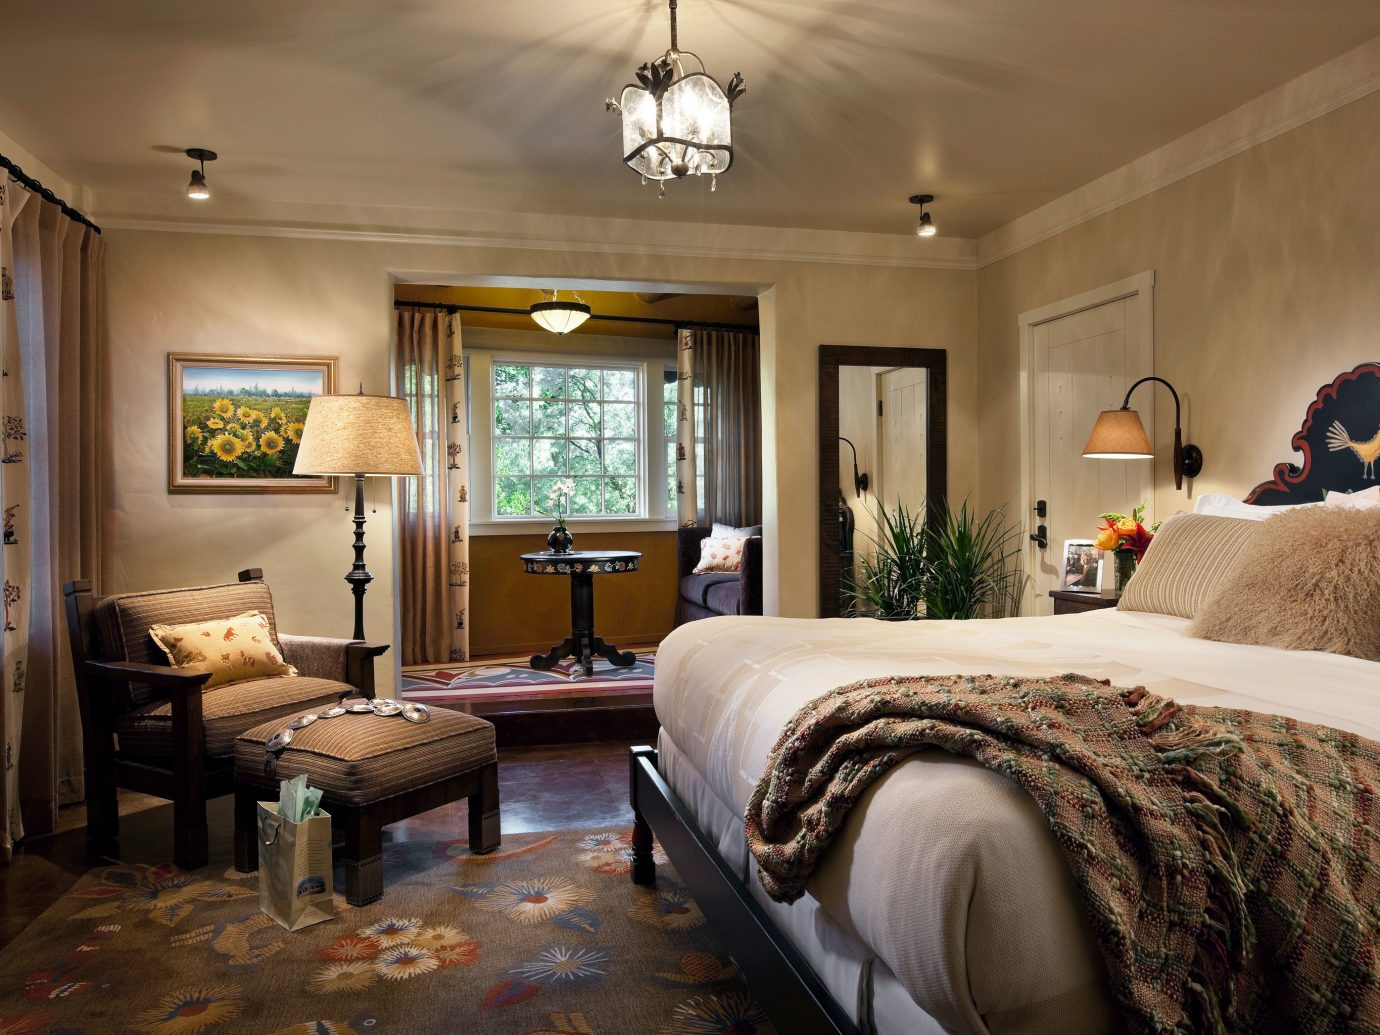 Historic Hotels Luxury indoor sofa wall room ceiling bed floor property Bedroom estate hotel living room home Suite interior design cottage real estate mansion farmhouse furniture decorated